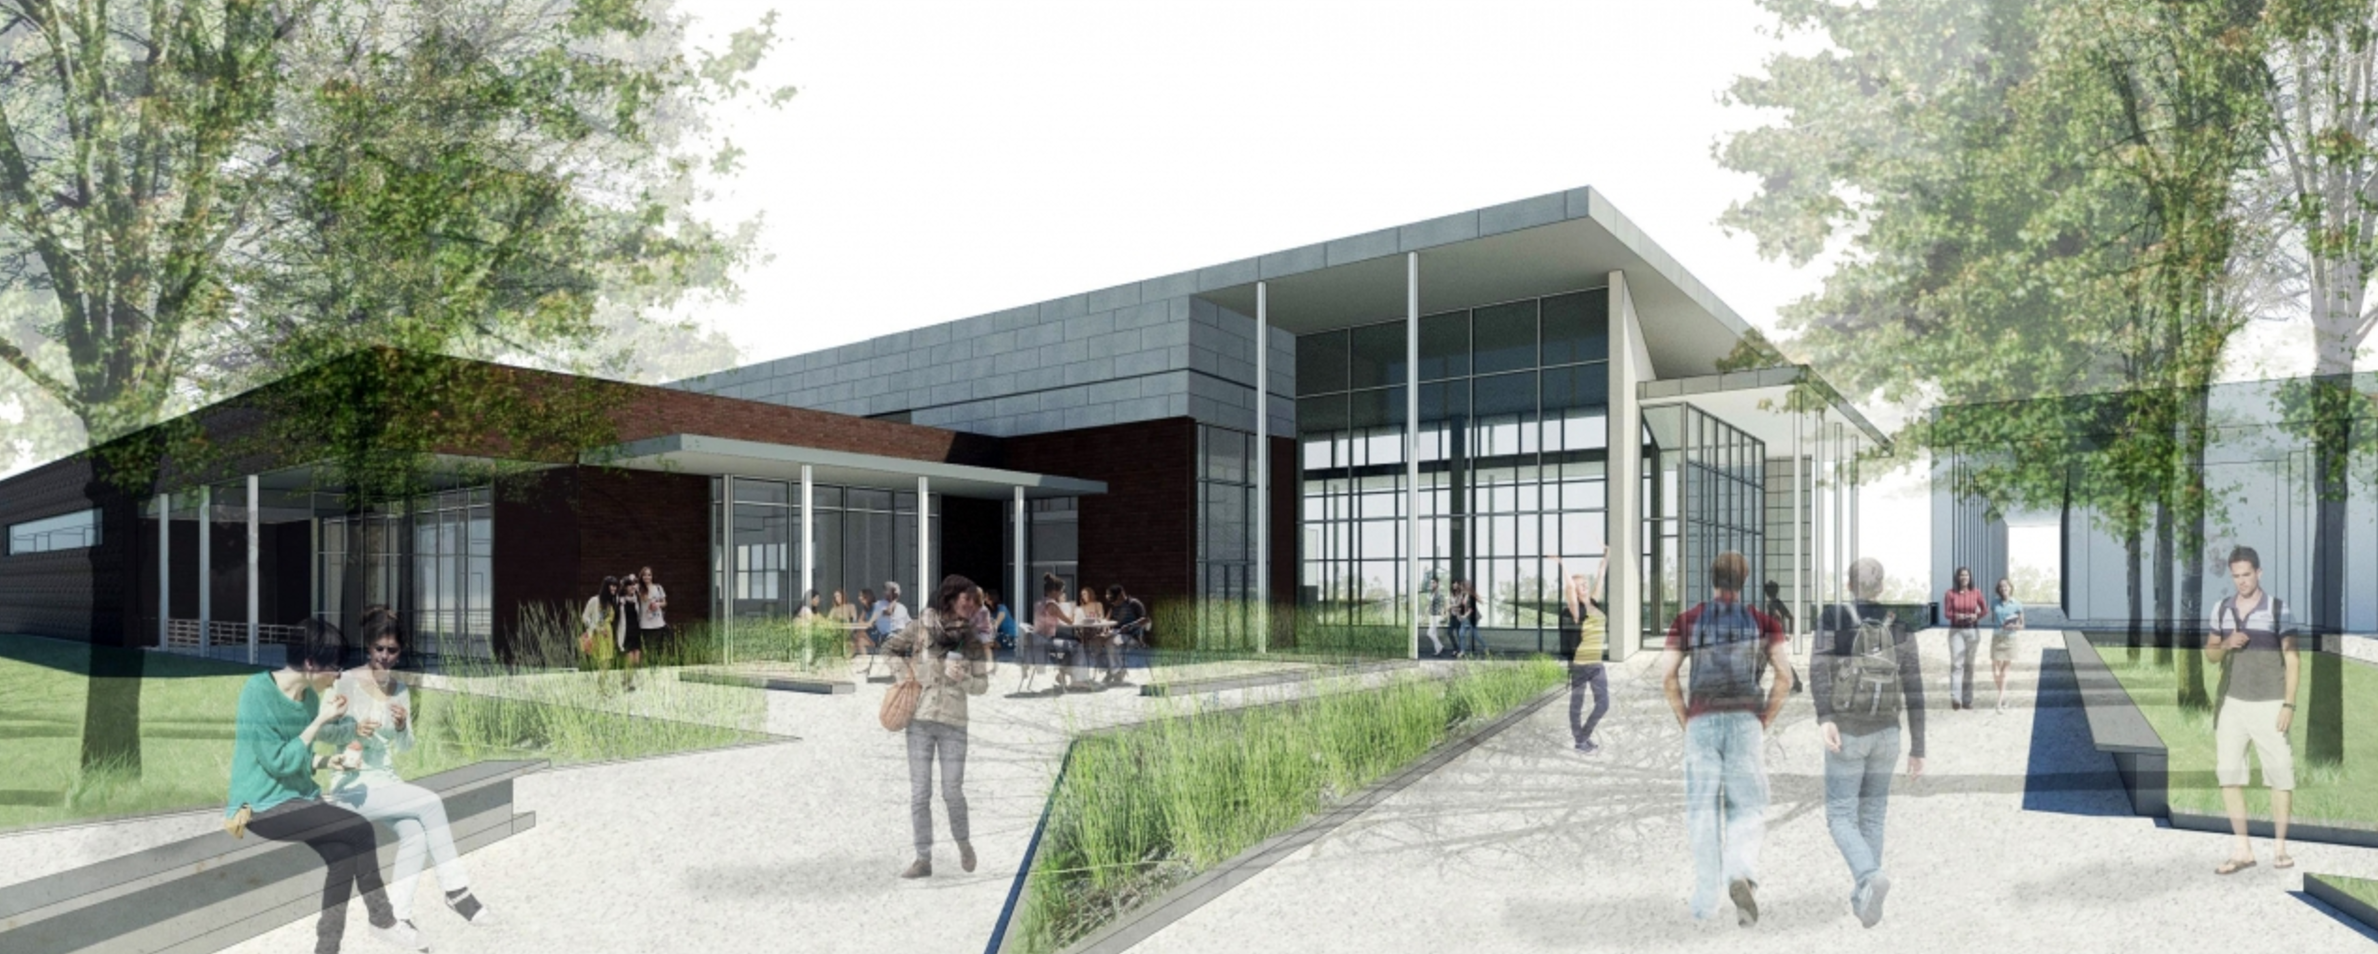 rendering of dining hall